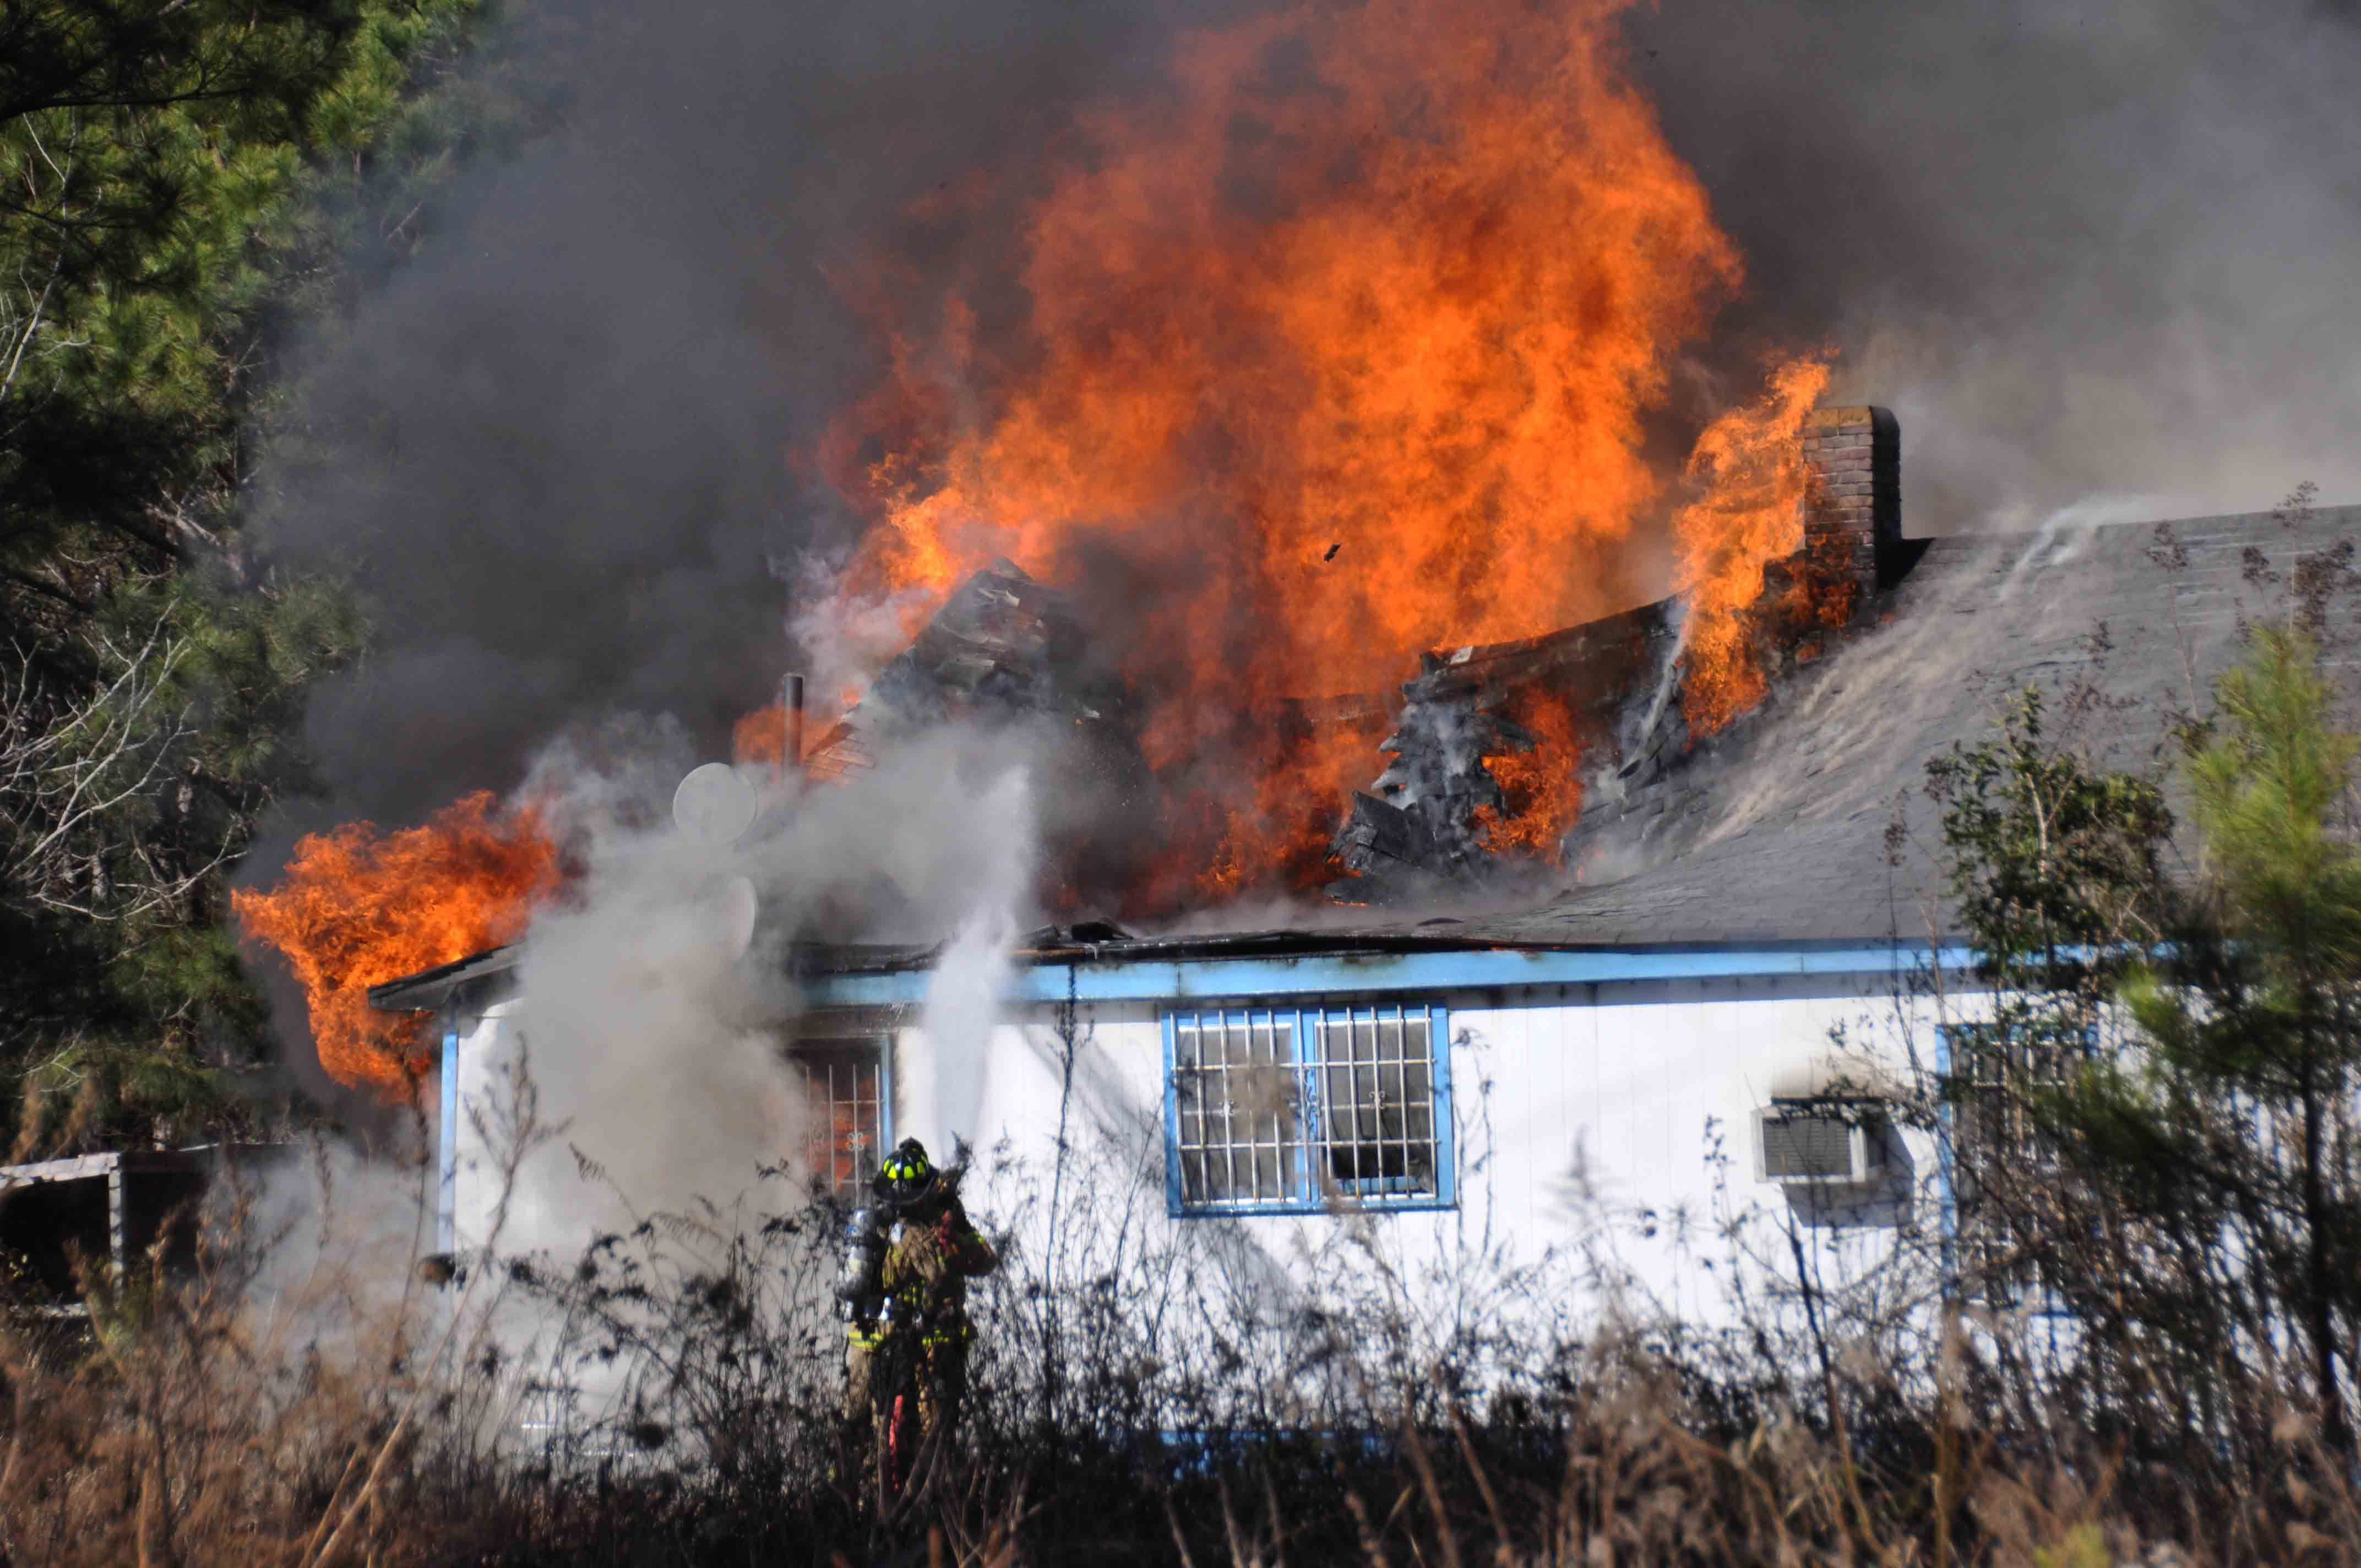 Fire damage adjuster is very important if your building is